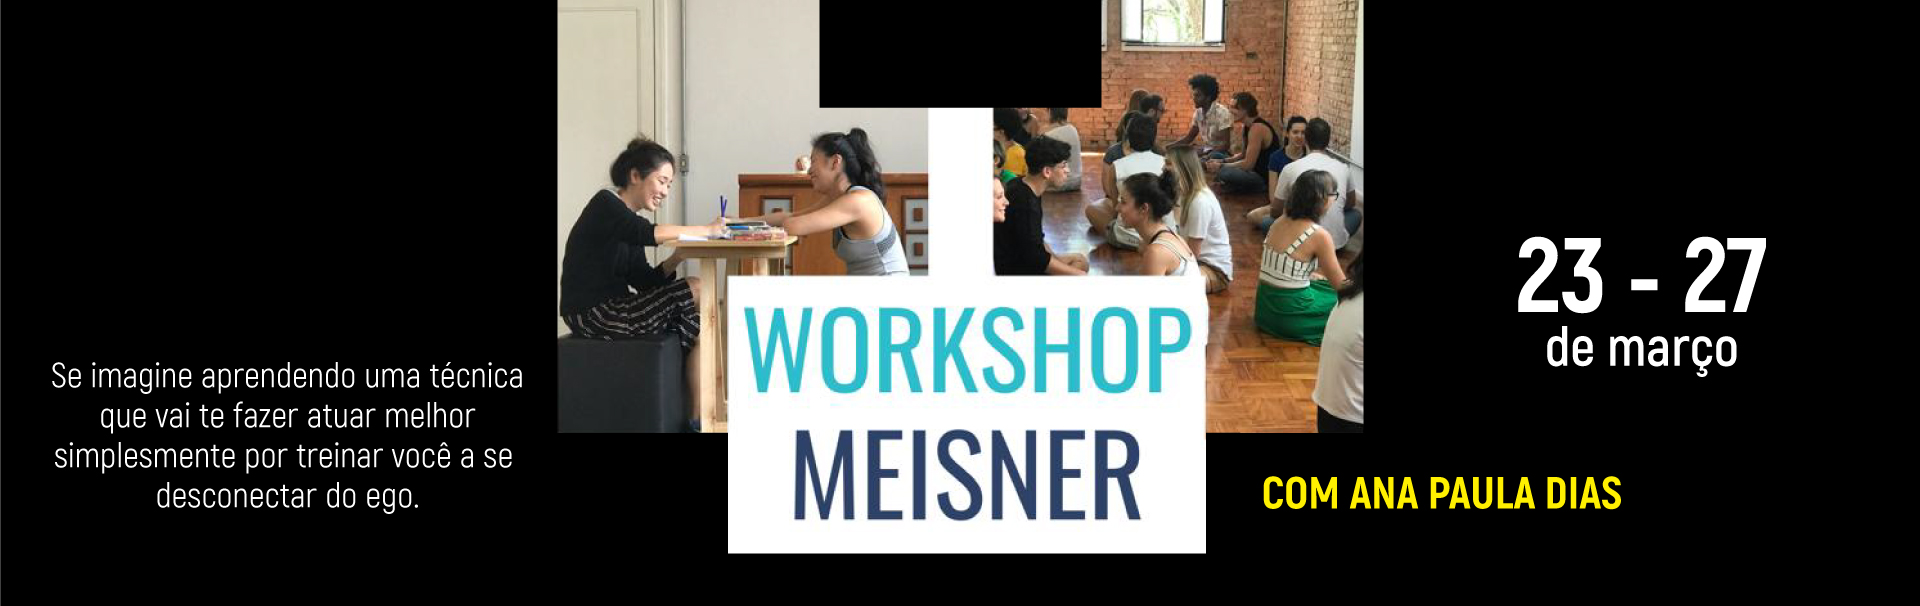 workshop-meisner-banner